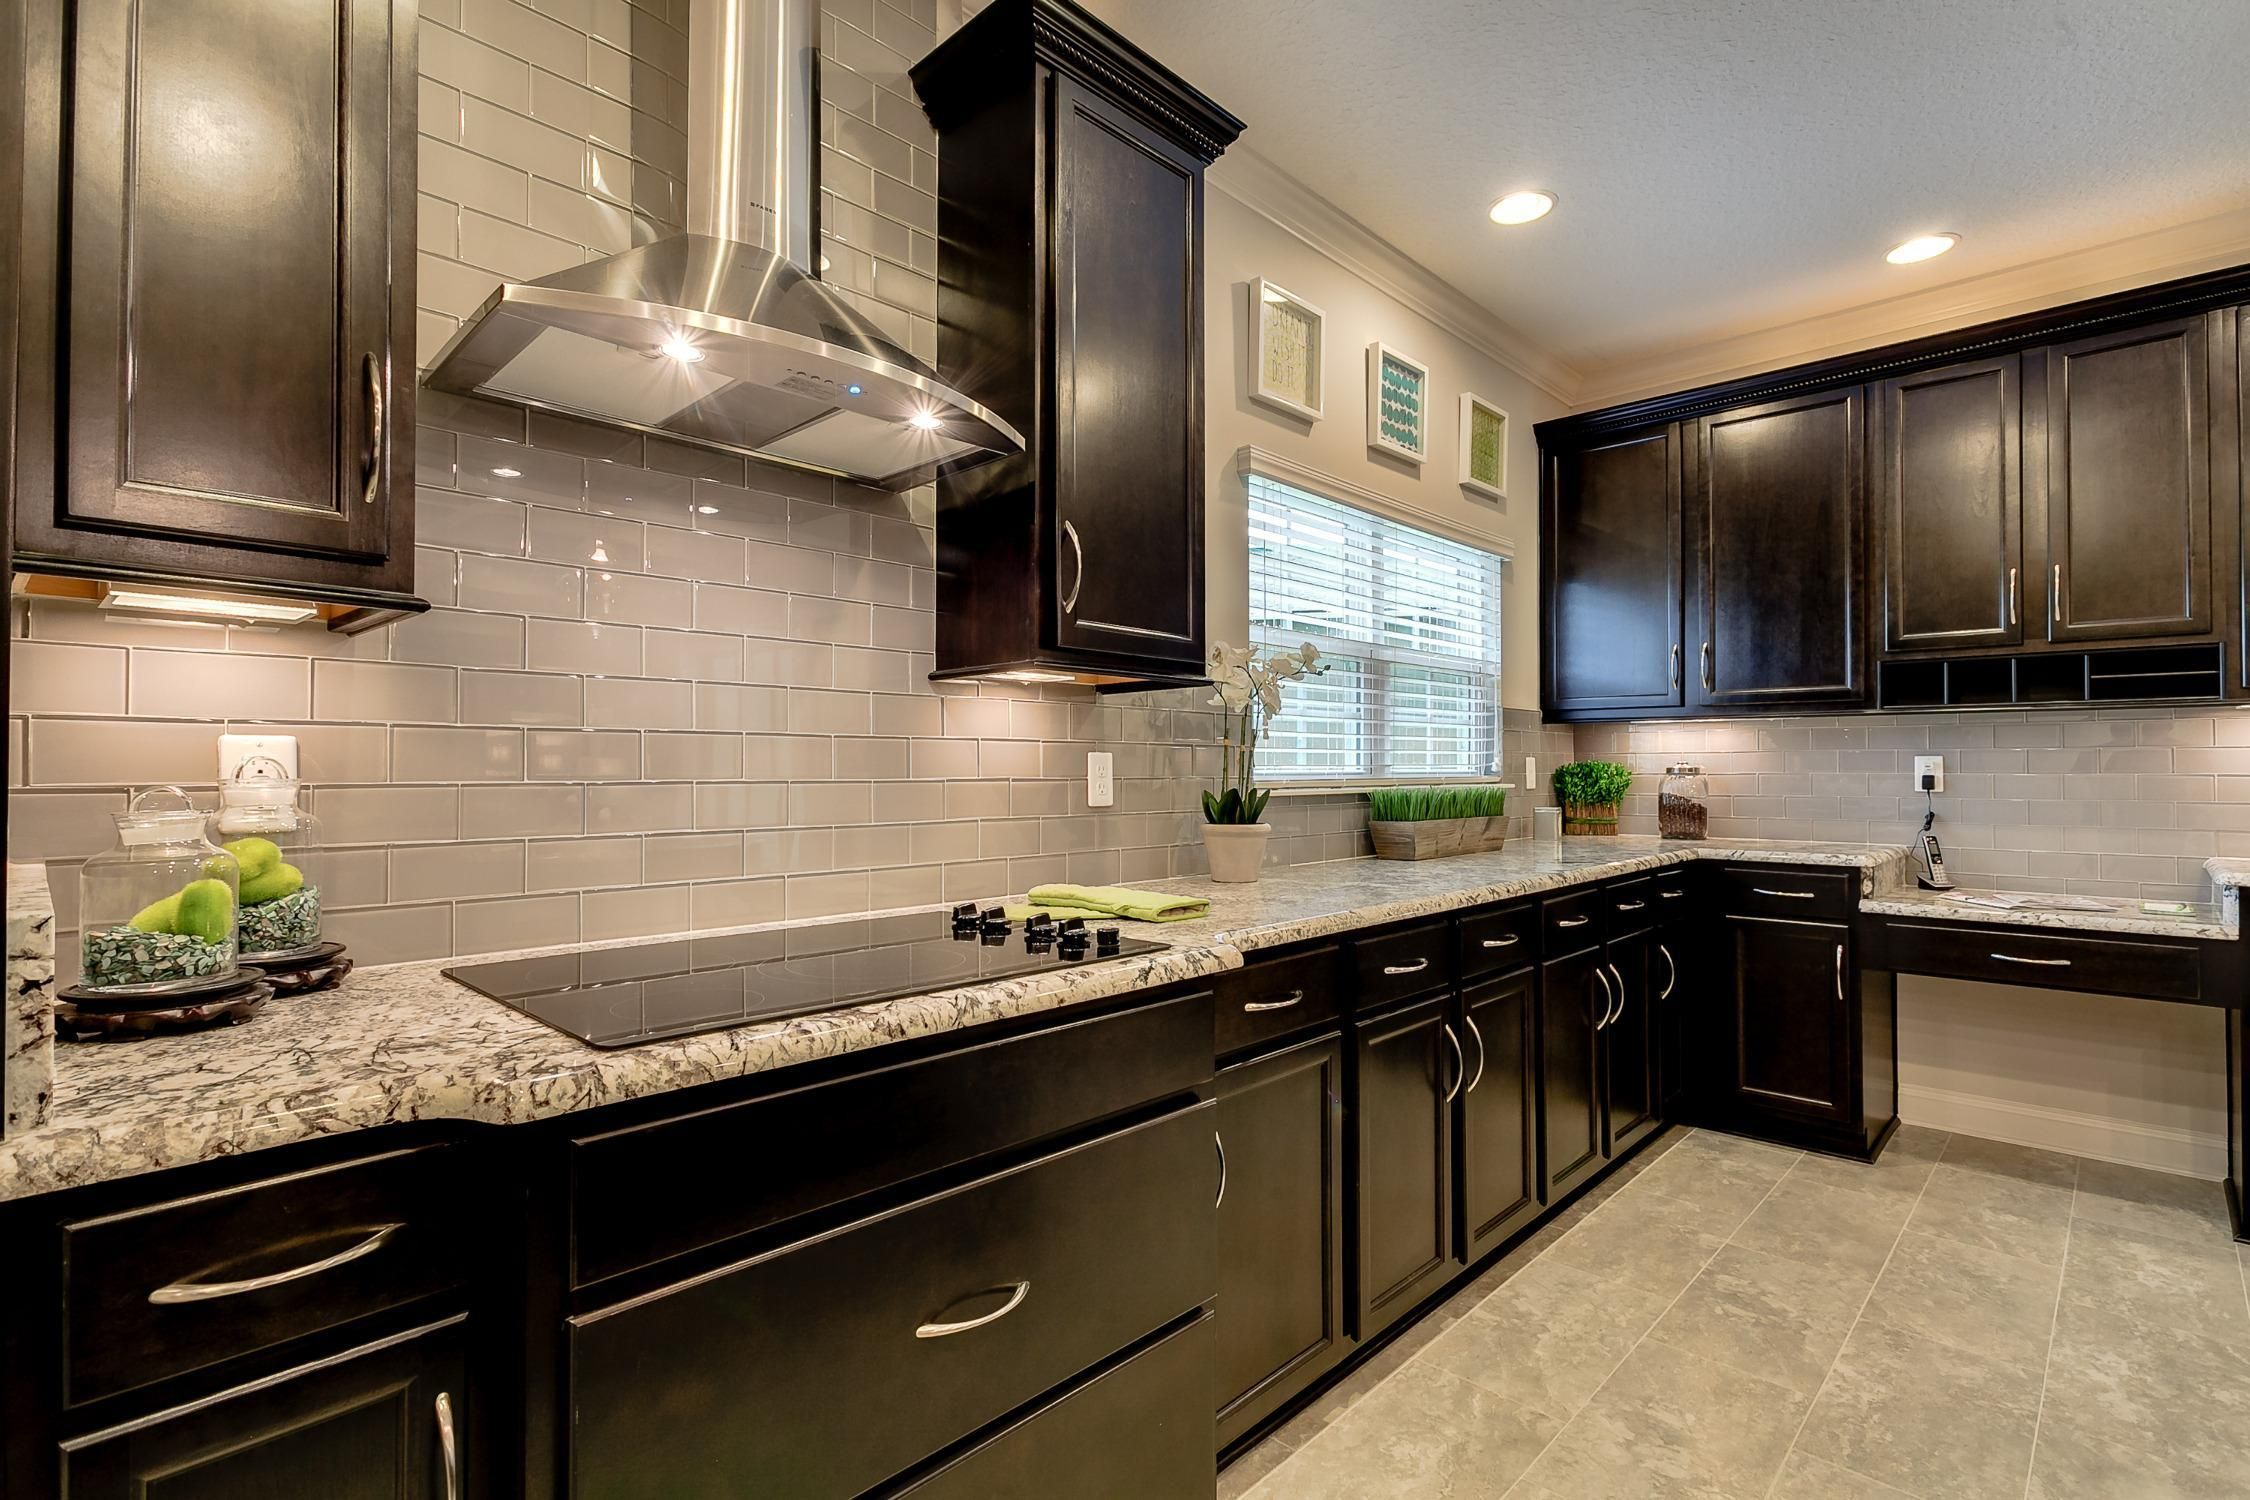 Dark wooden cabinets provide a warm aesthetic while walking into